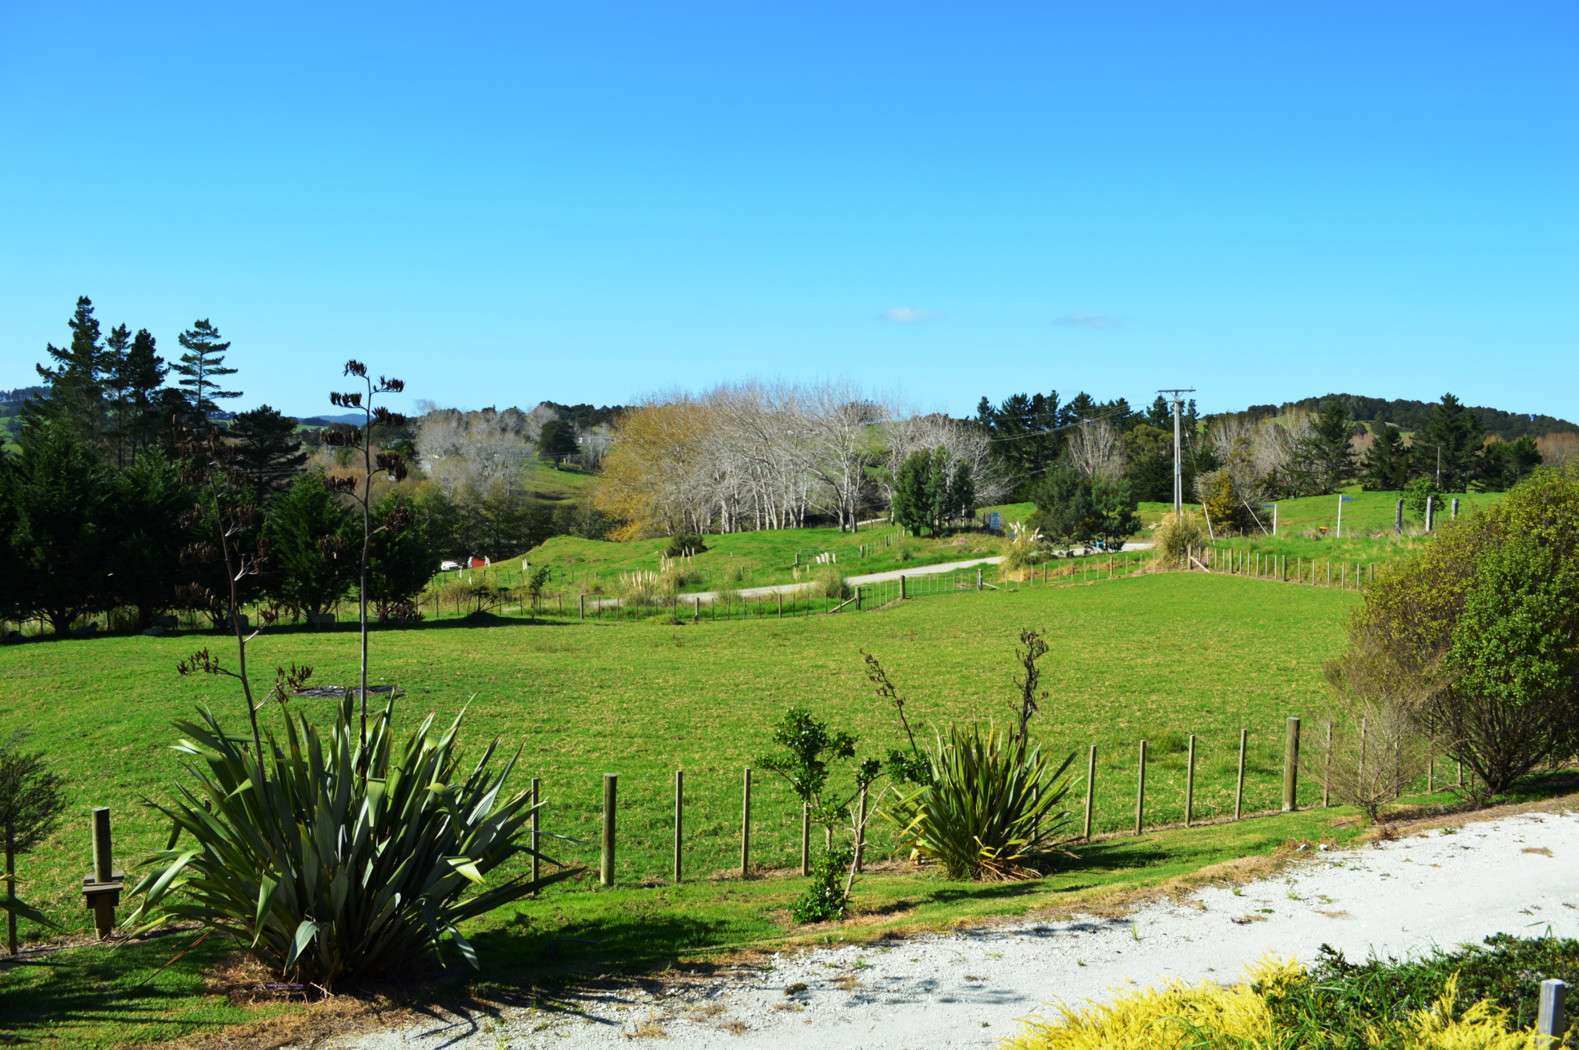 53 Settlement Road, KAIWAKA, Kaipara District 0573